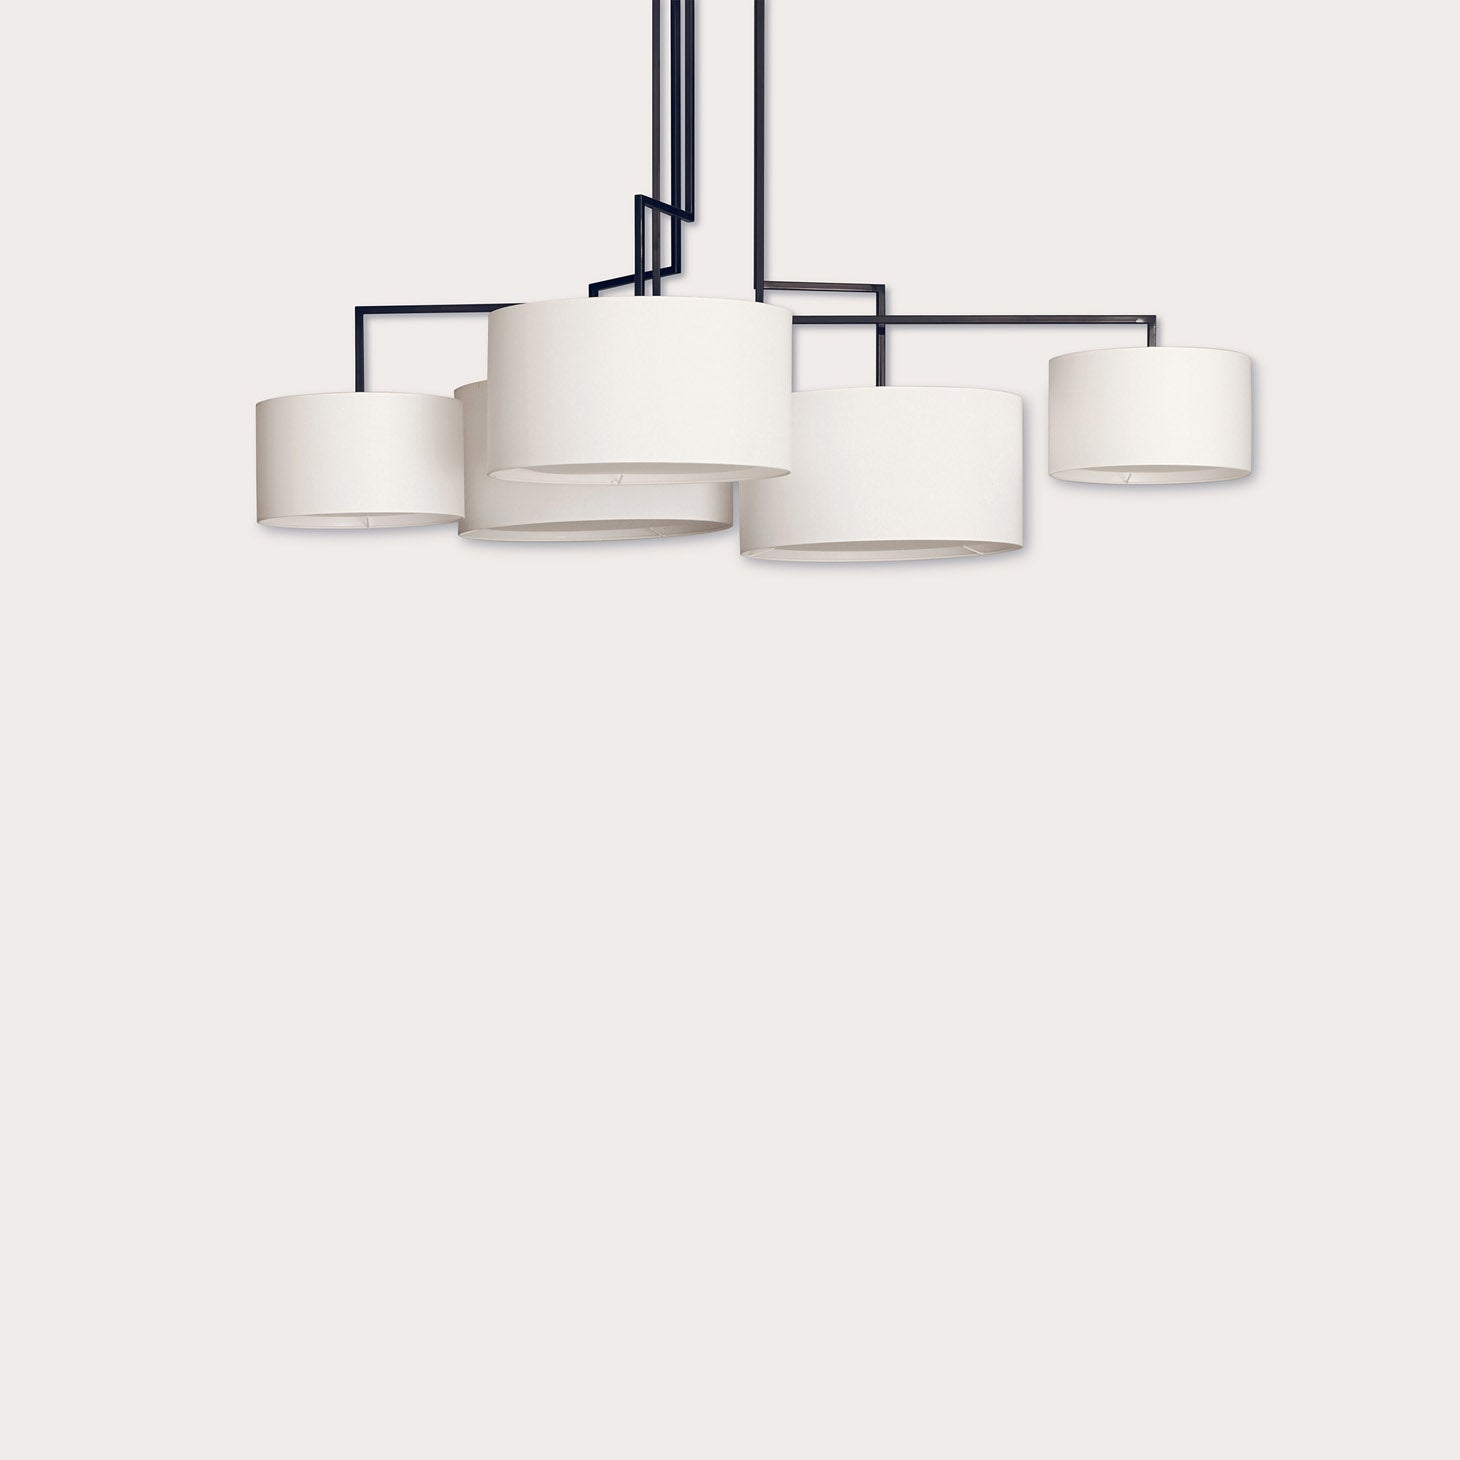 Noon 5 Lighting El Schmid Designer Furniture Sku: 006-160-10019